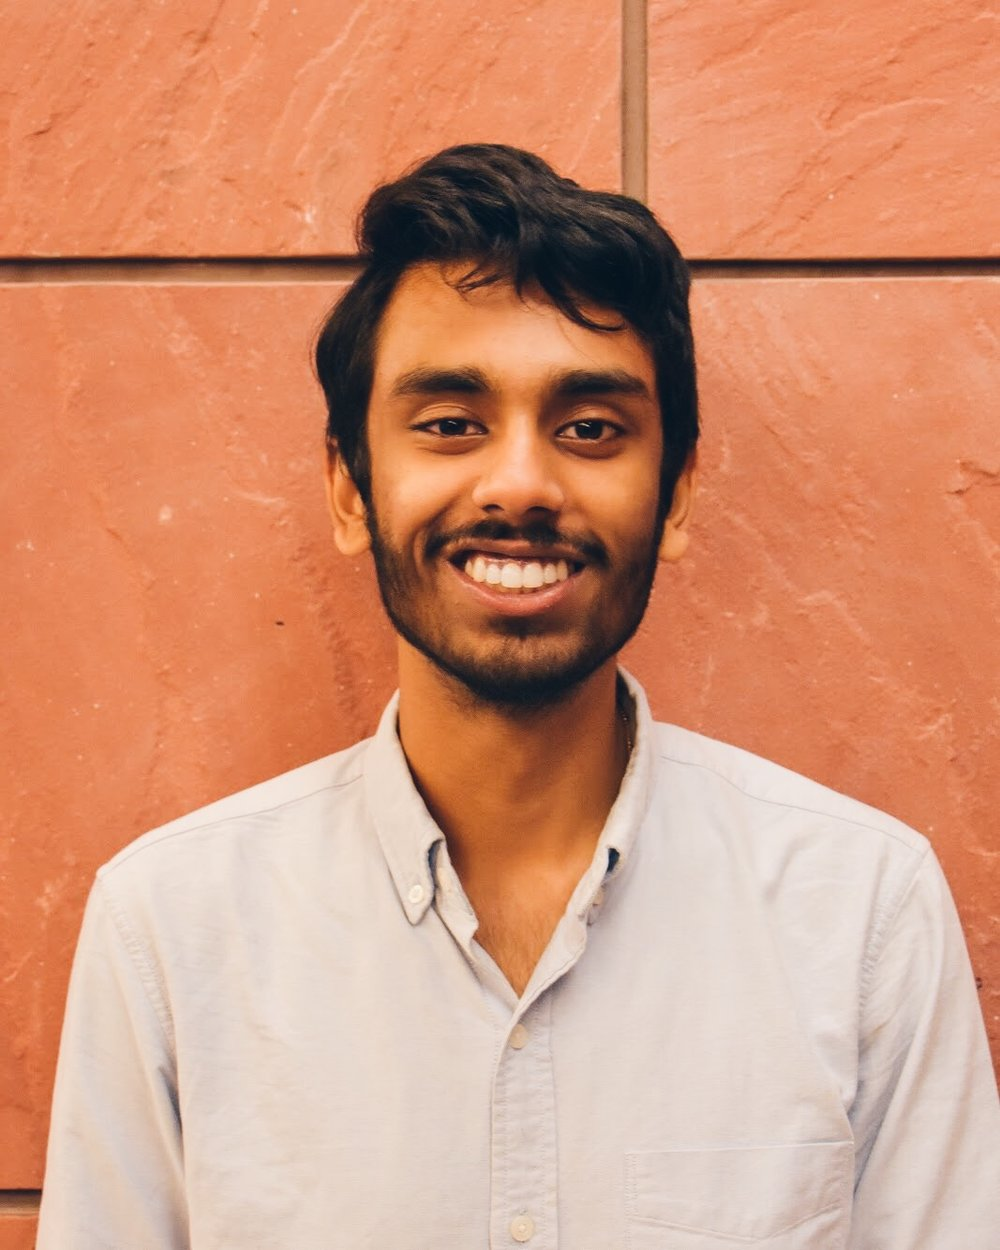 Vinai Rachakonda, Director of Web